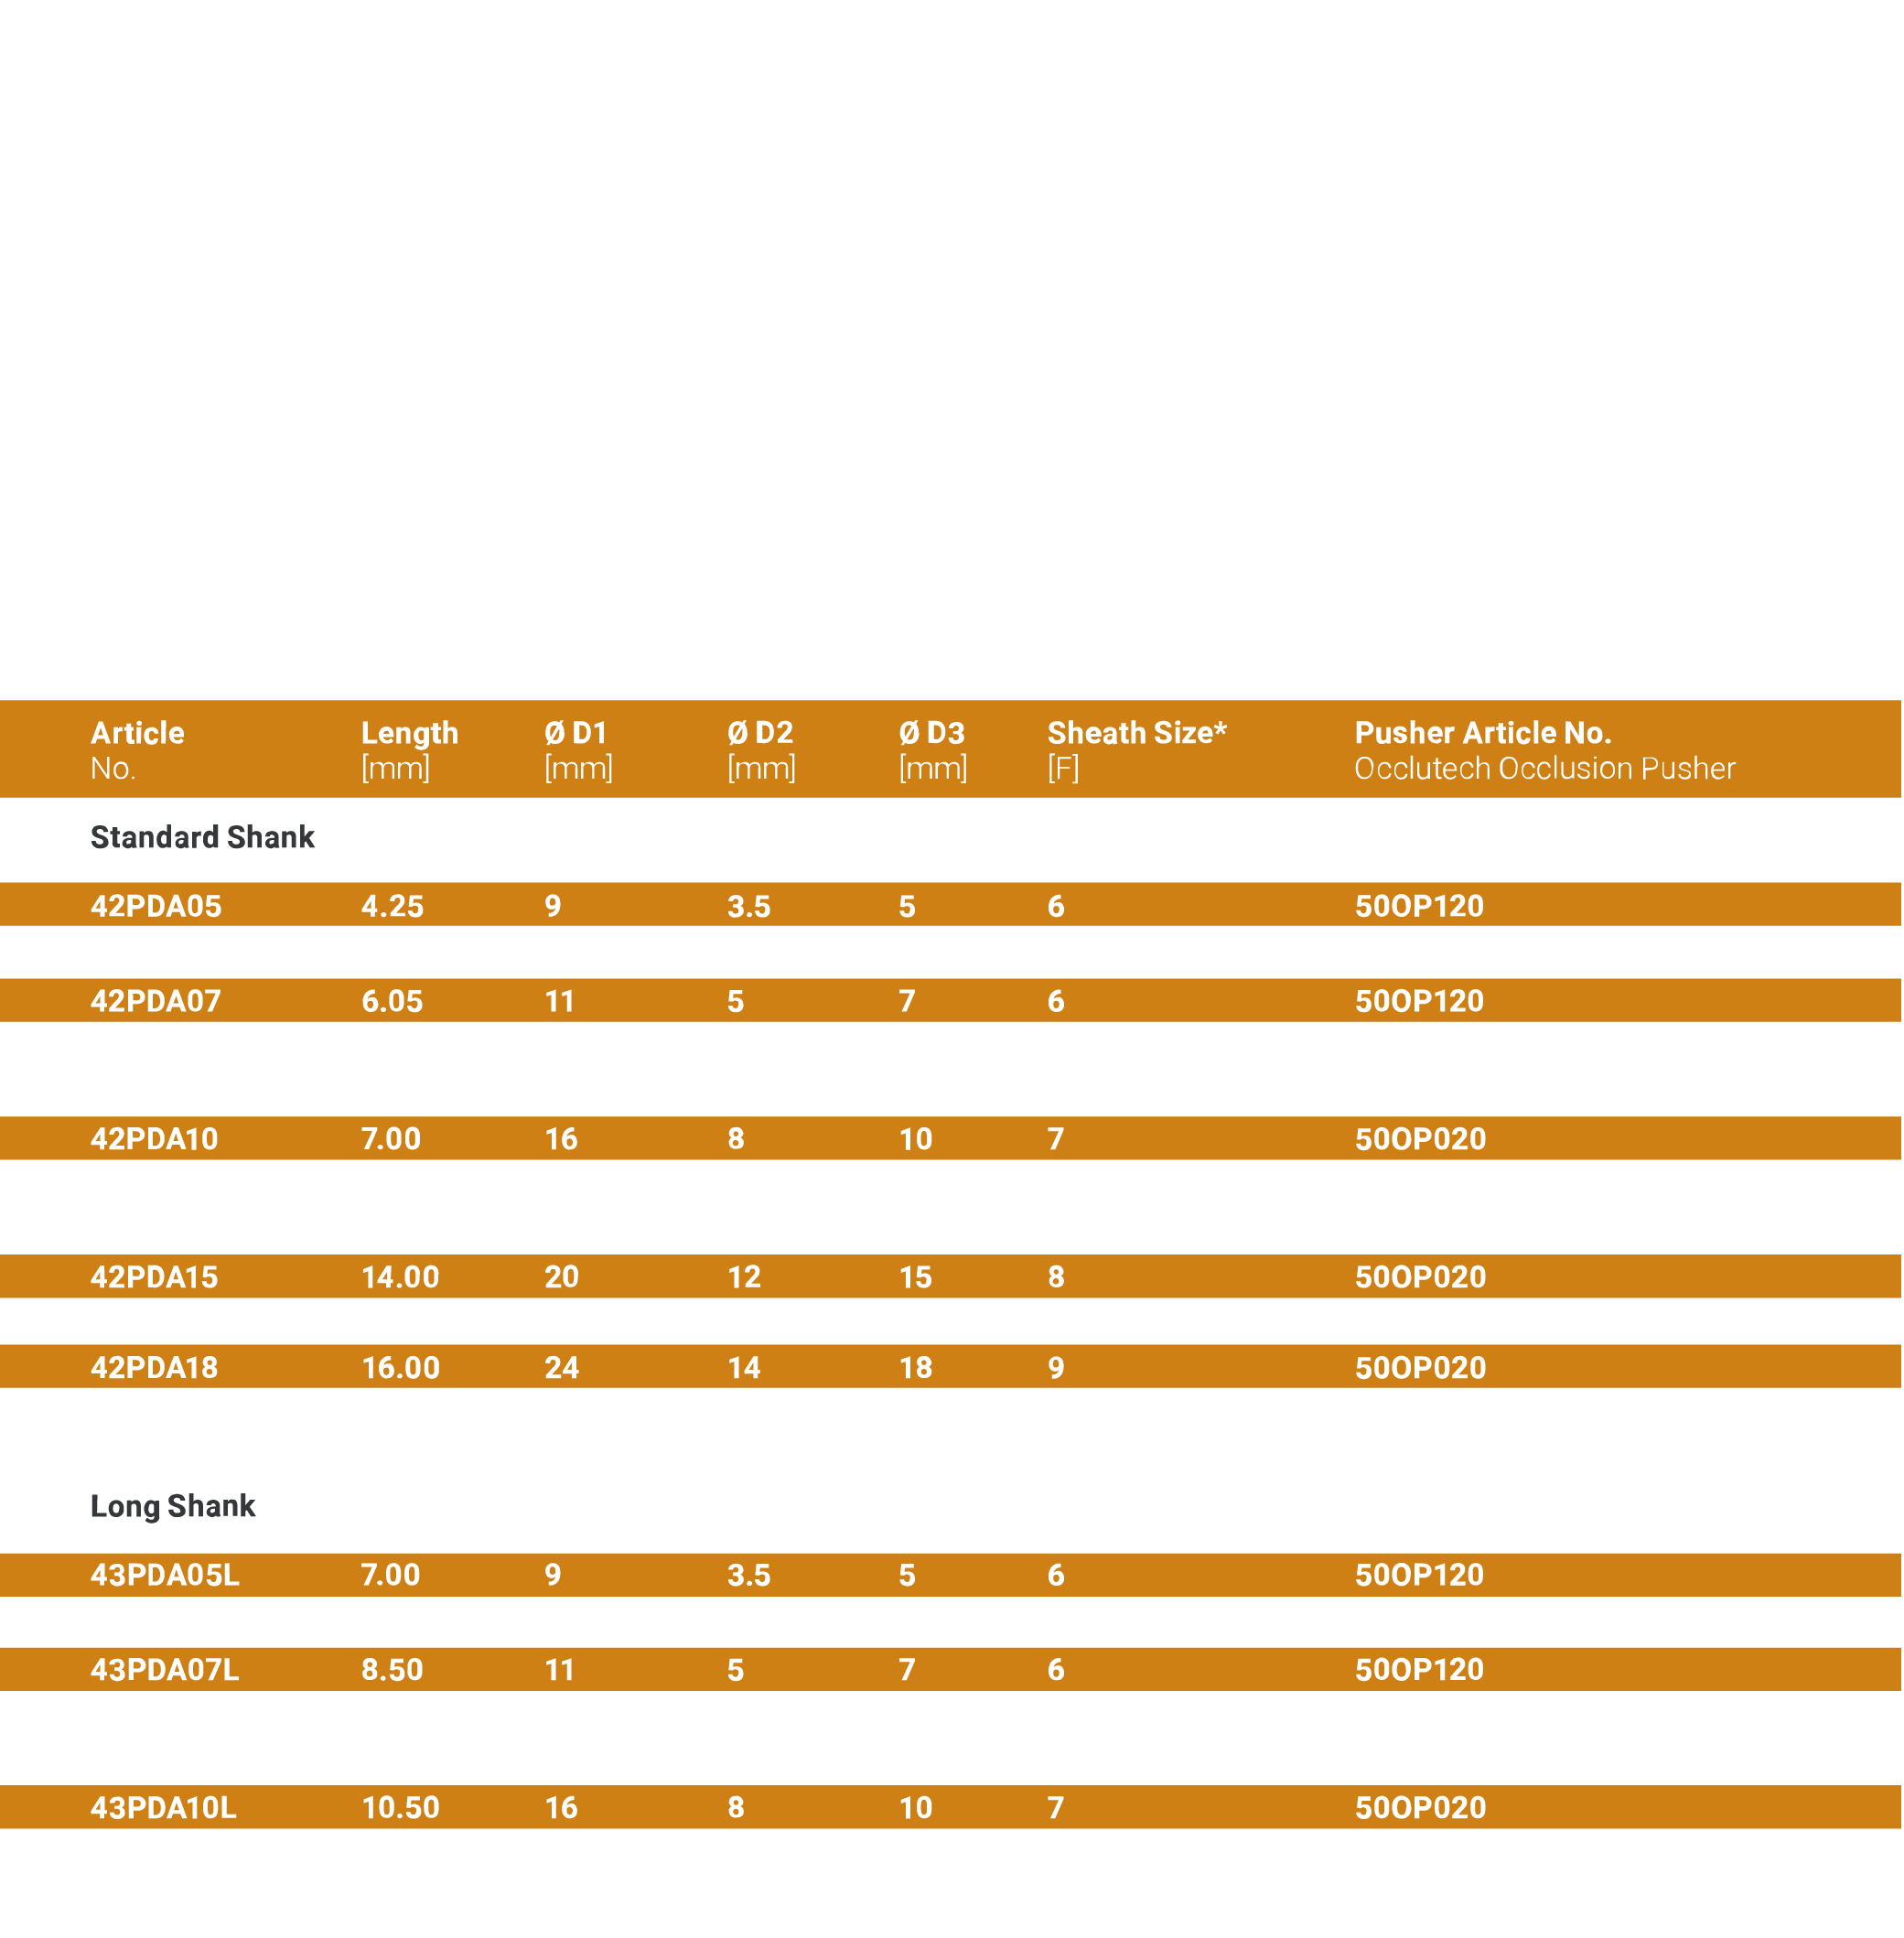 pda product specifications